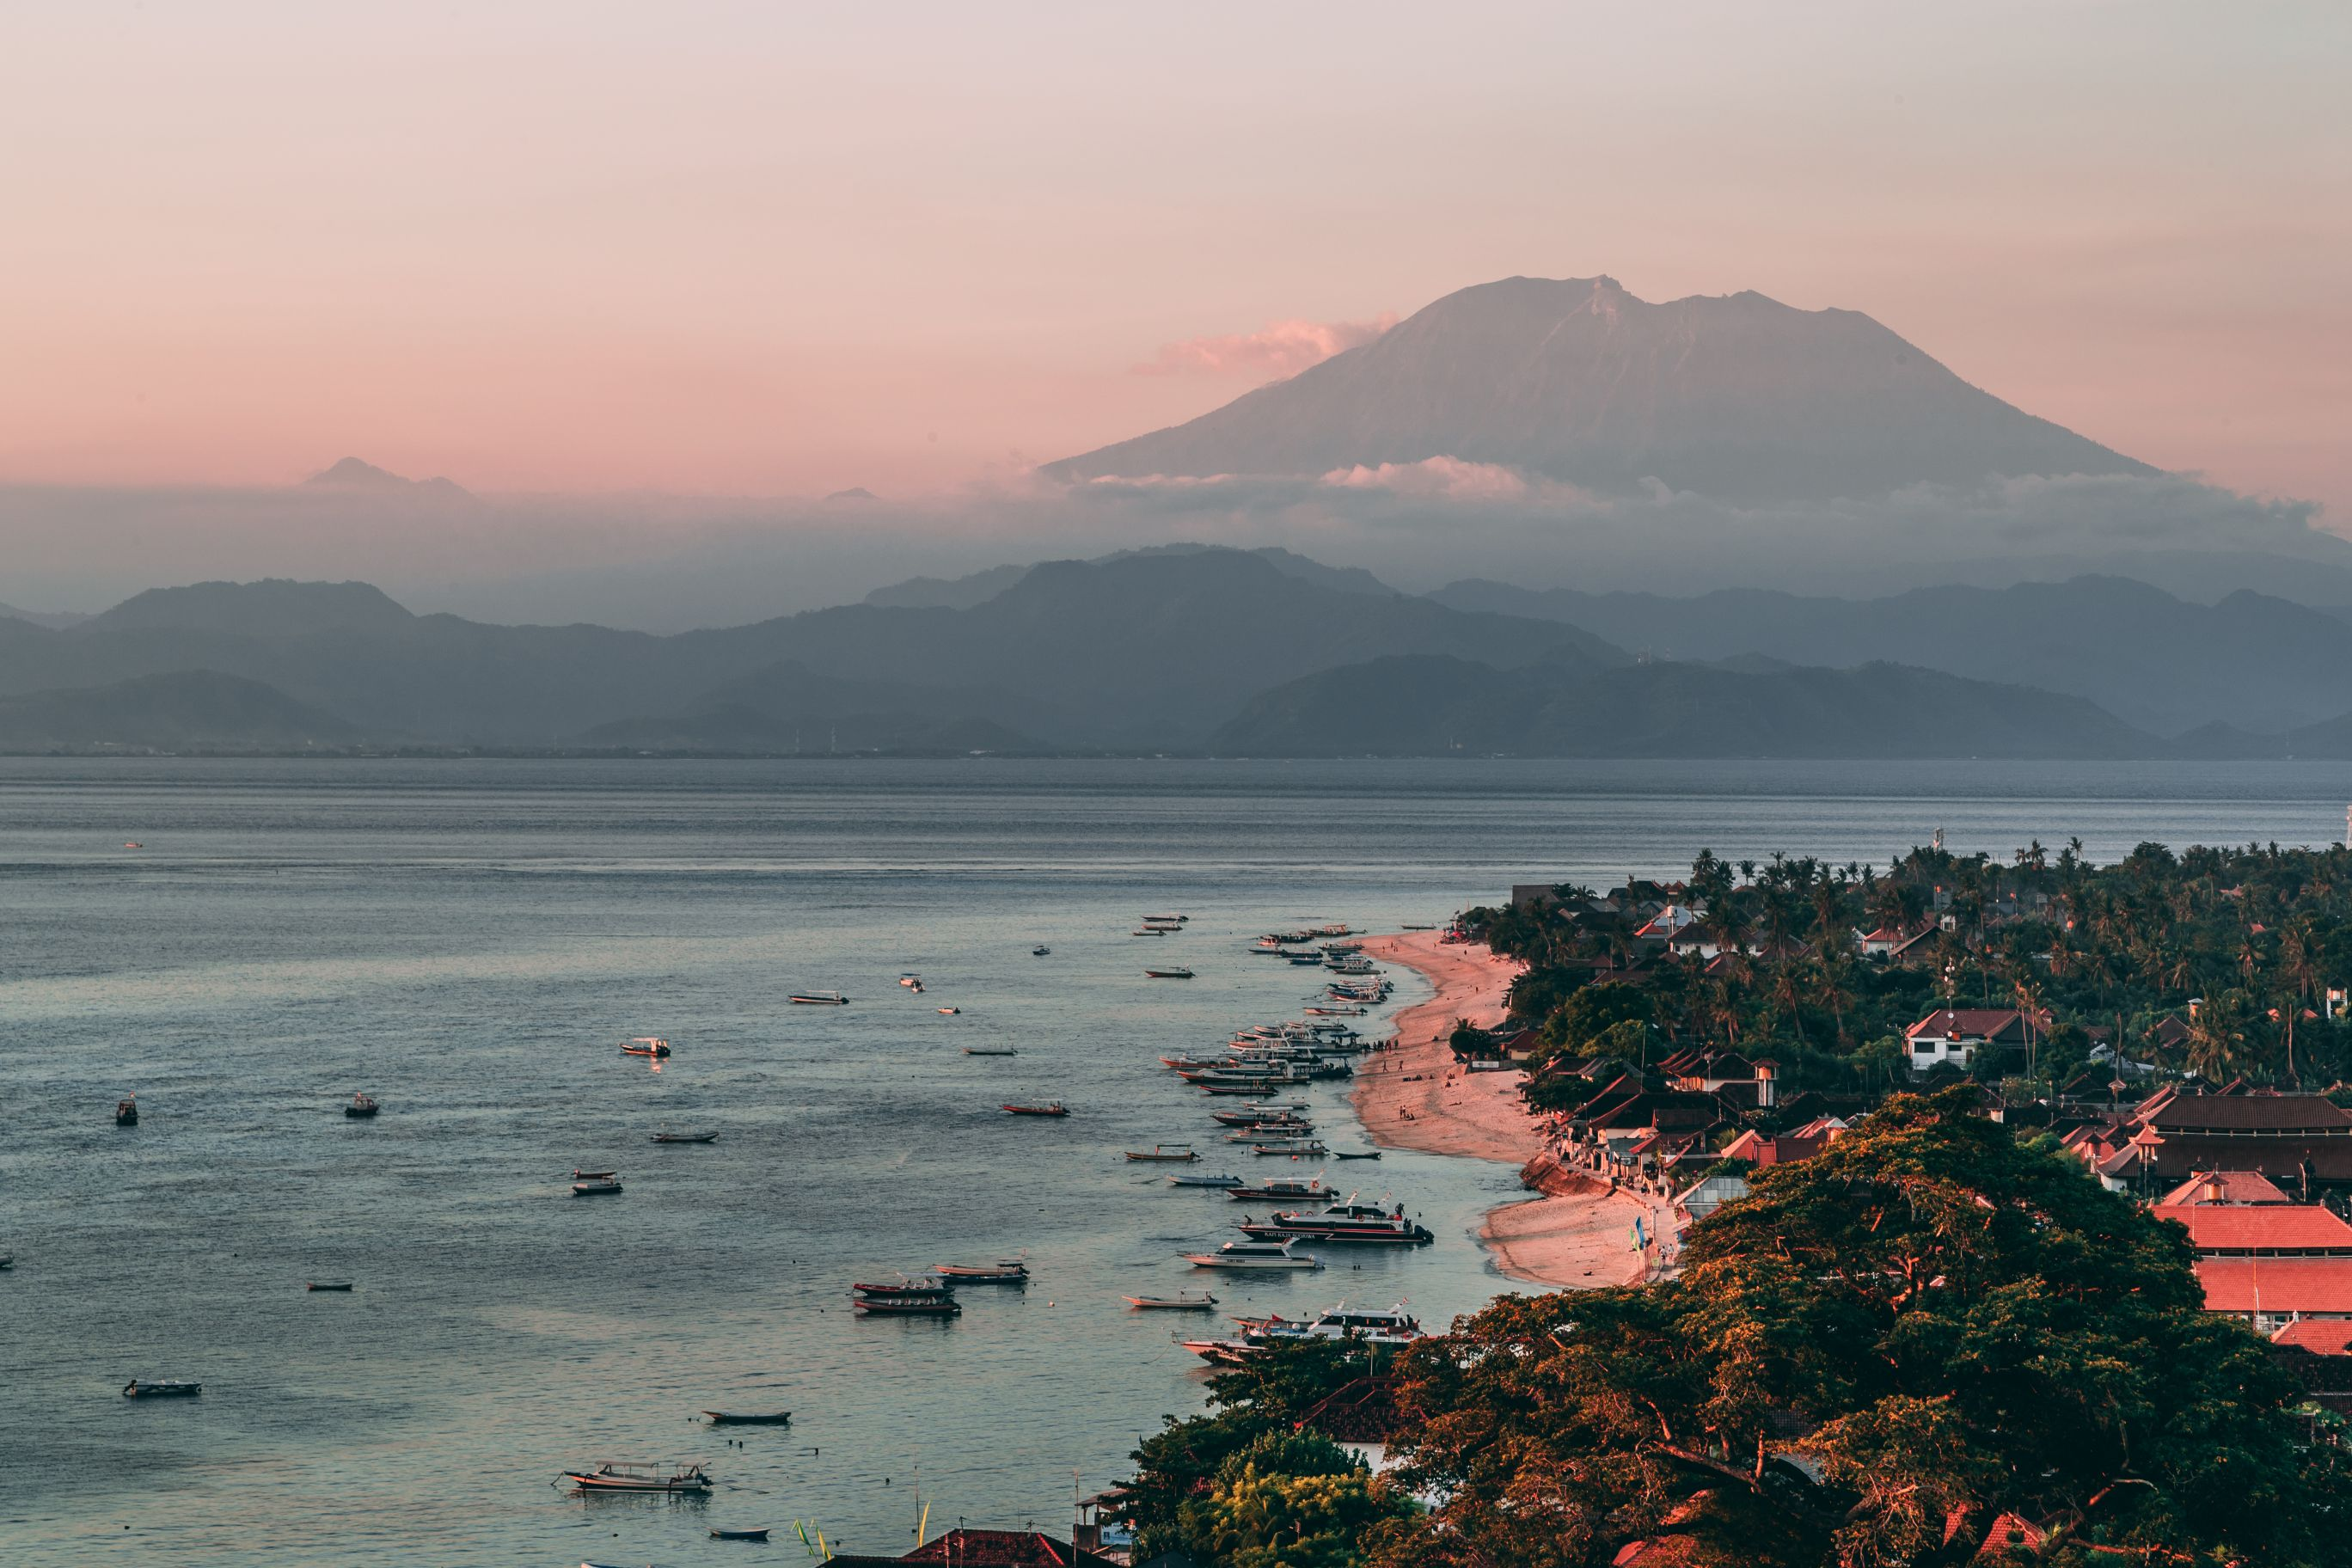 Sunset over a balinese beach, village and fishing boats.